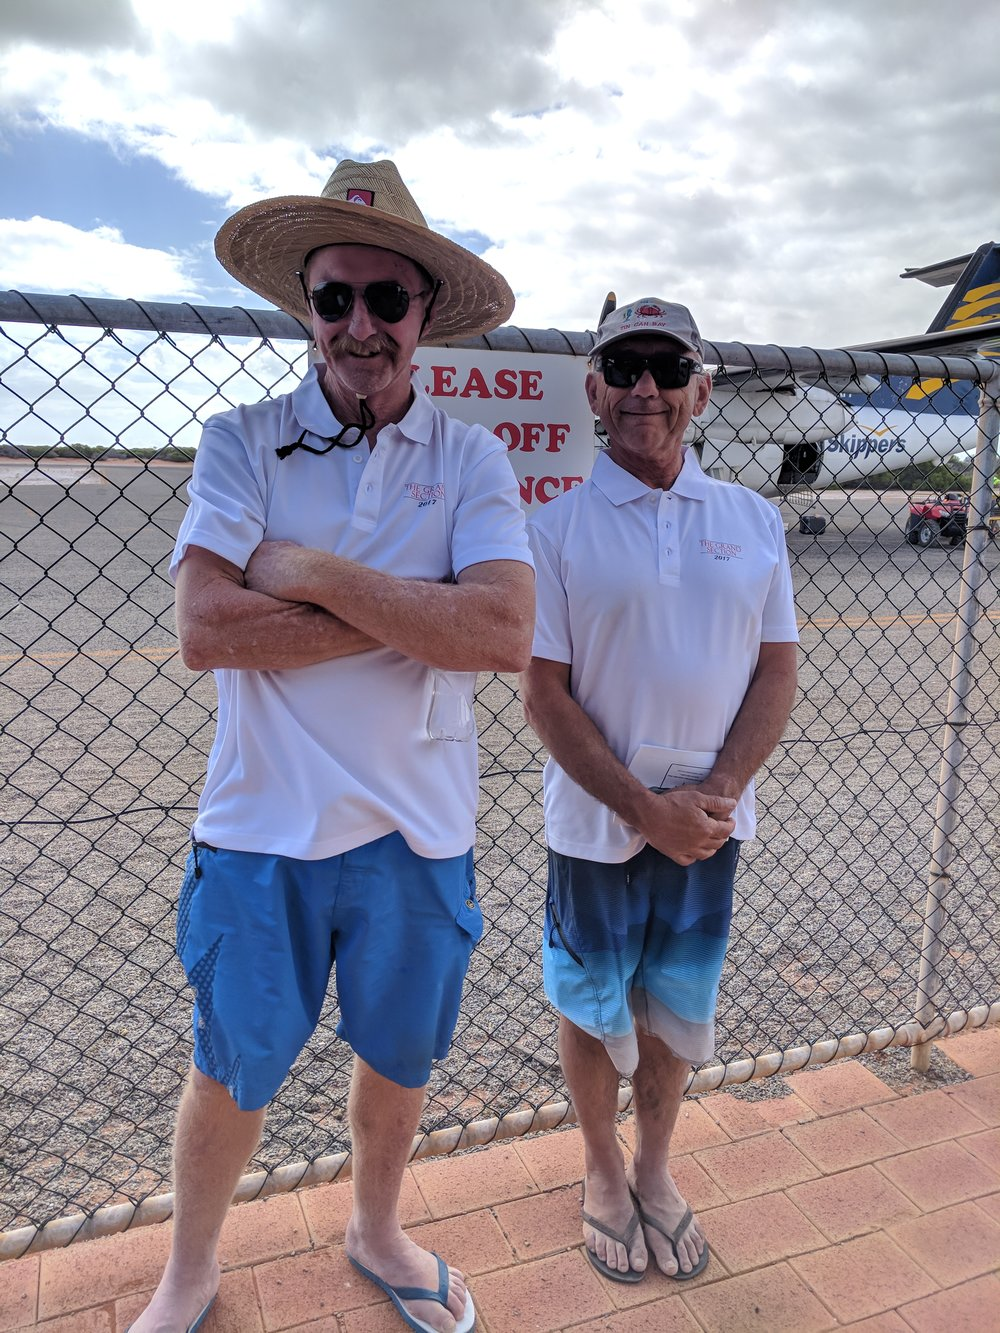 The Support Crew, Bobbies dad Chriss (R) & friend Gerard (L) excited to be a part of the team